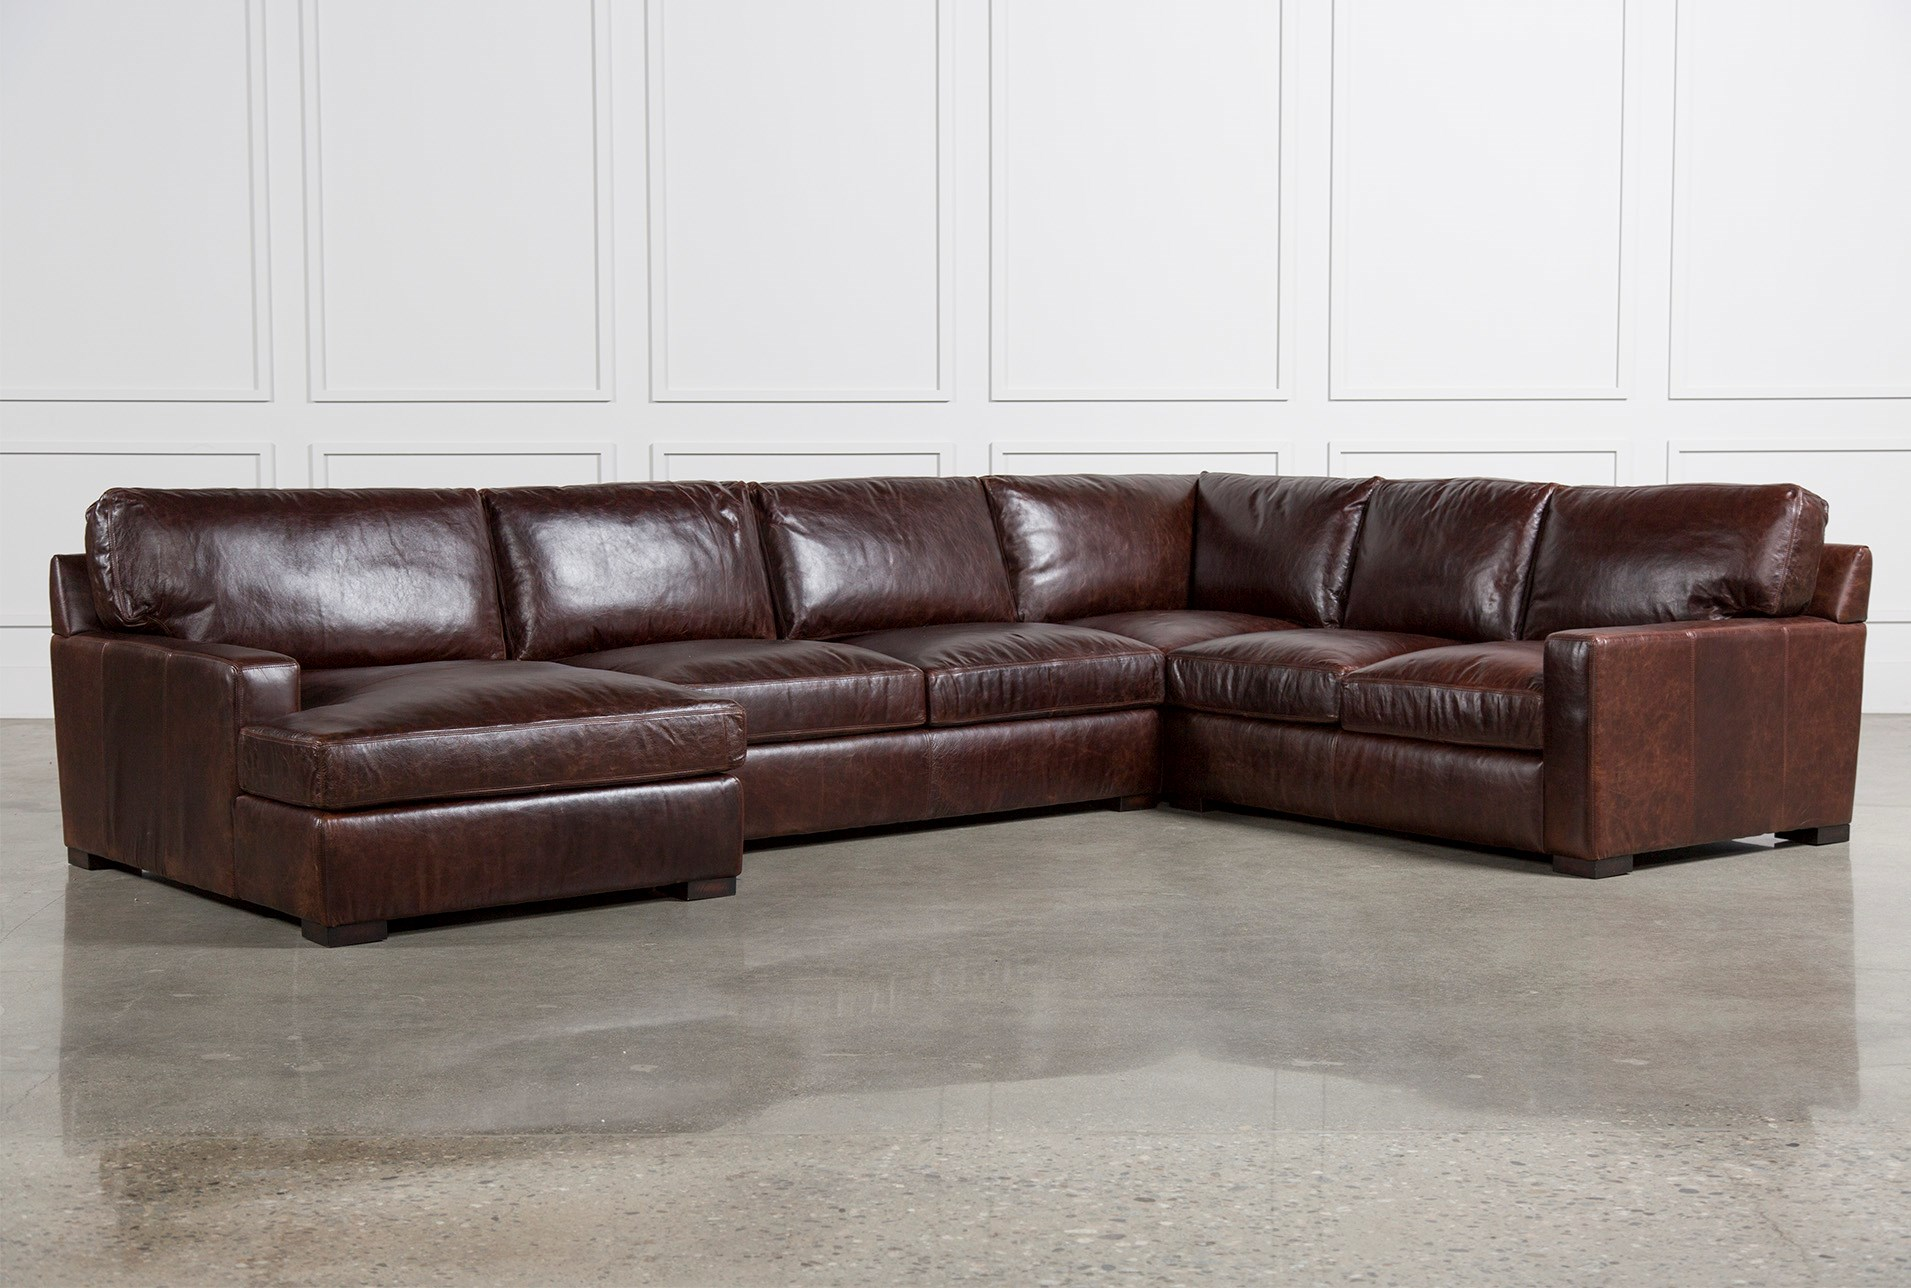 leather one sofa discussing sectional no design why home is distressed